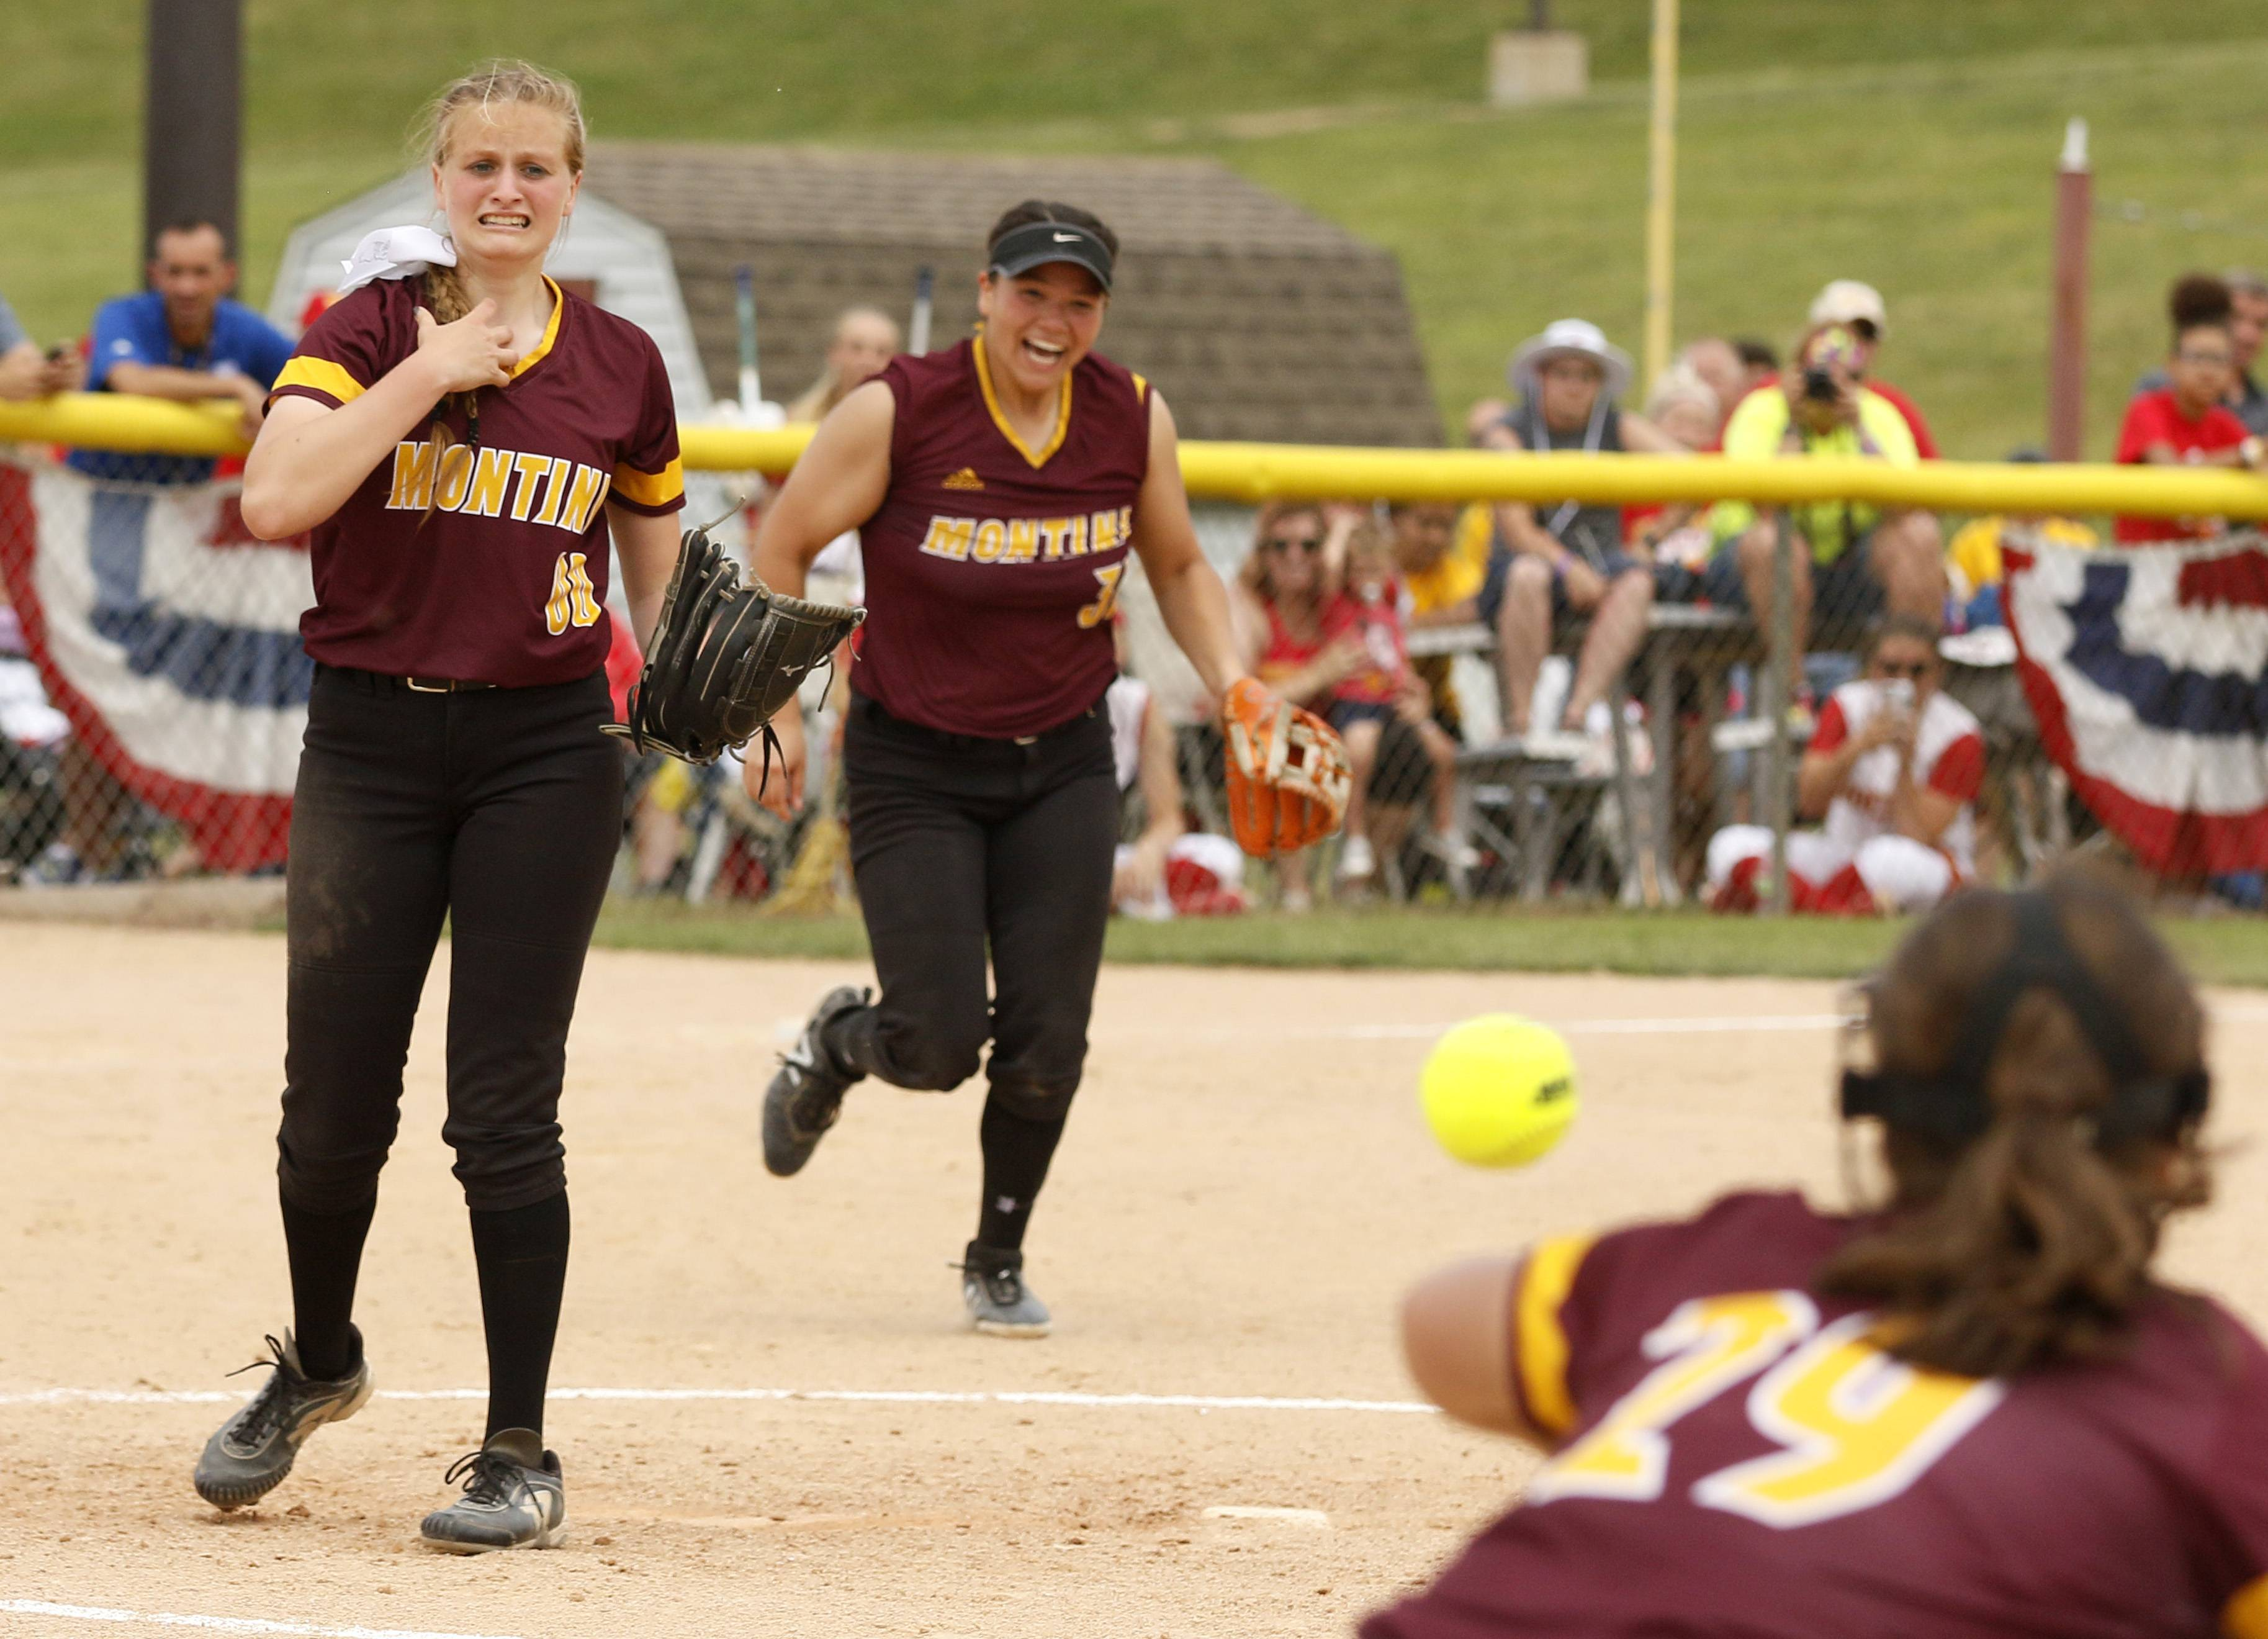 Montini Catholic's Allyson Dilday, left, watches the final out during the Bronco's comeback win against Kaneland.